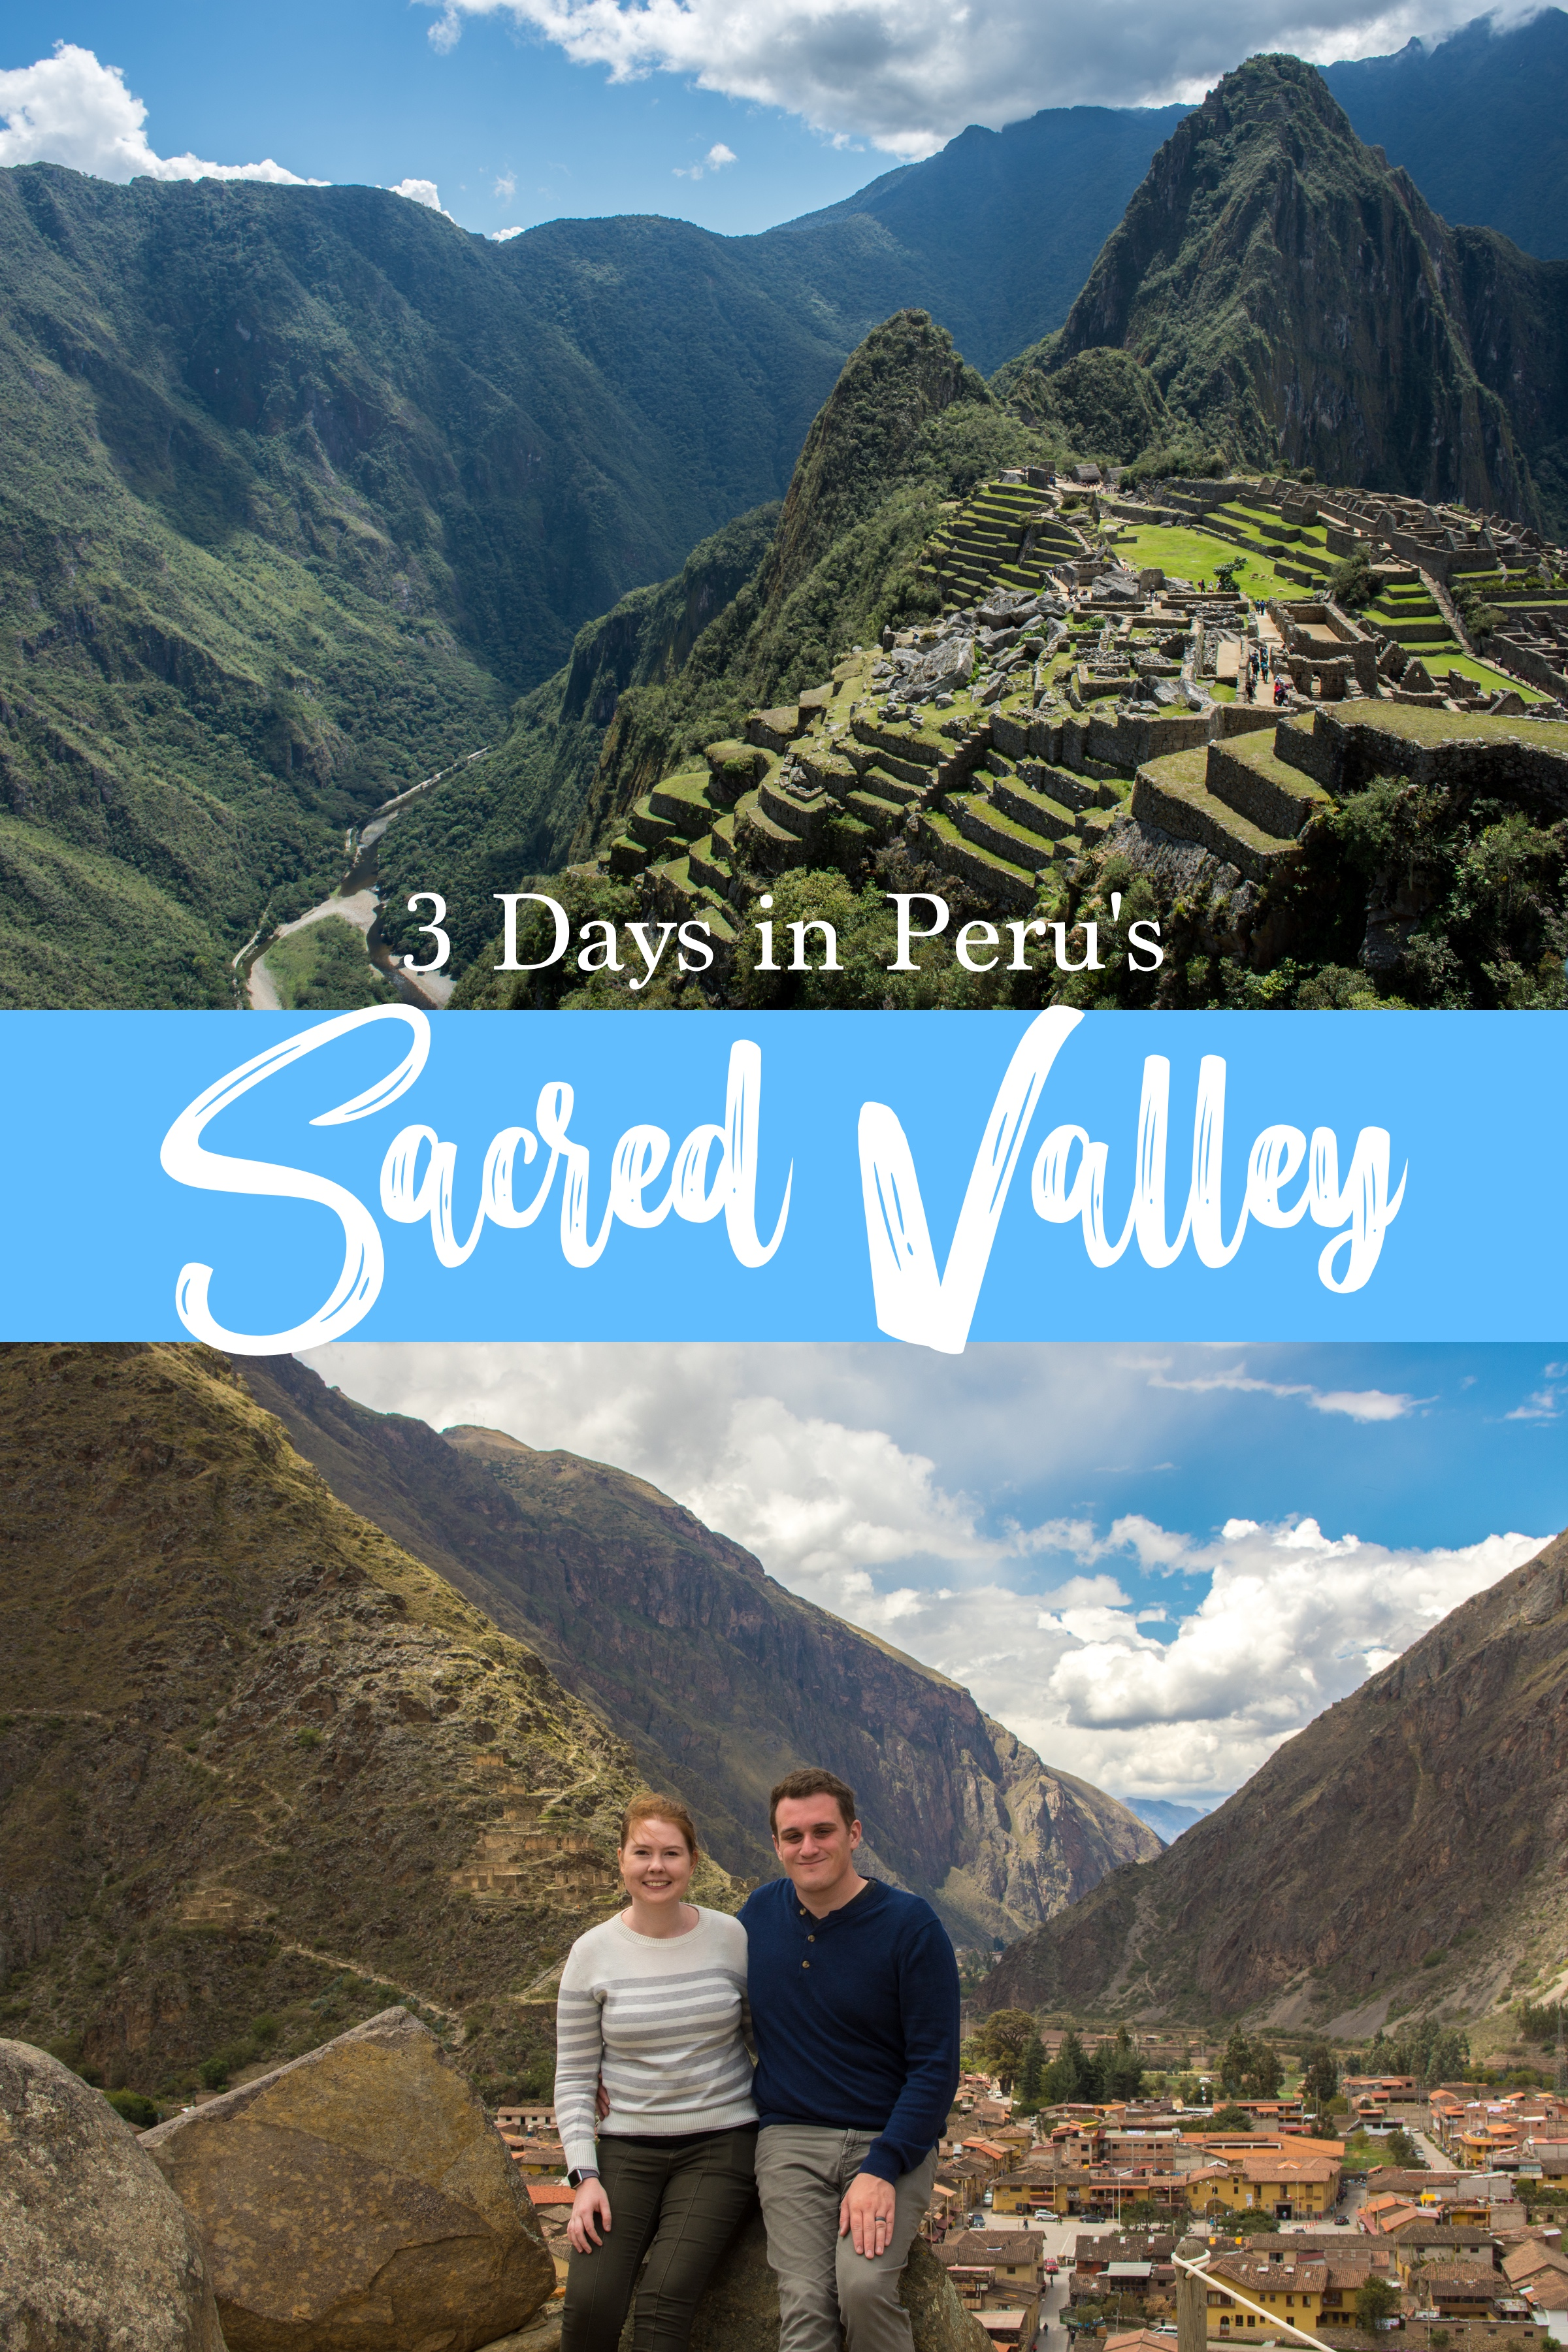 With most visitors beelining to the incredible bucket-list destination of Machu Picchu, the rest of Peru's Sacred Valley is often forgotten.  To fully experience this area, spend a few days outside of Cusco in the Sacred Valley of the Incas. 3 Days in the Sacred Valley #Peru #MachuPicchu #SacredValley